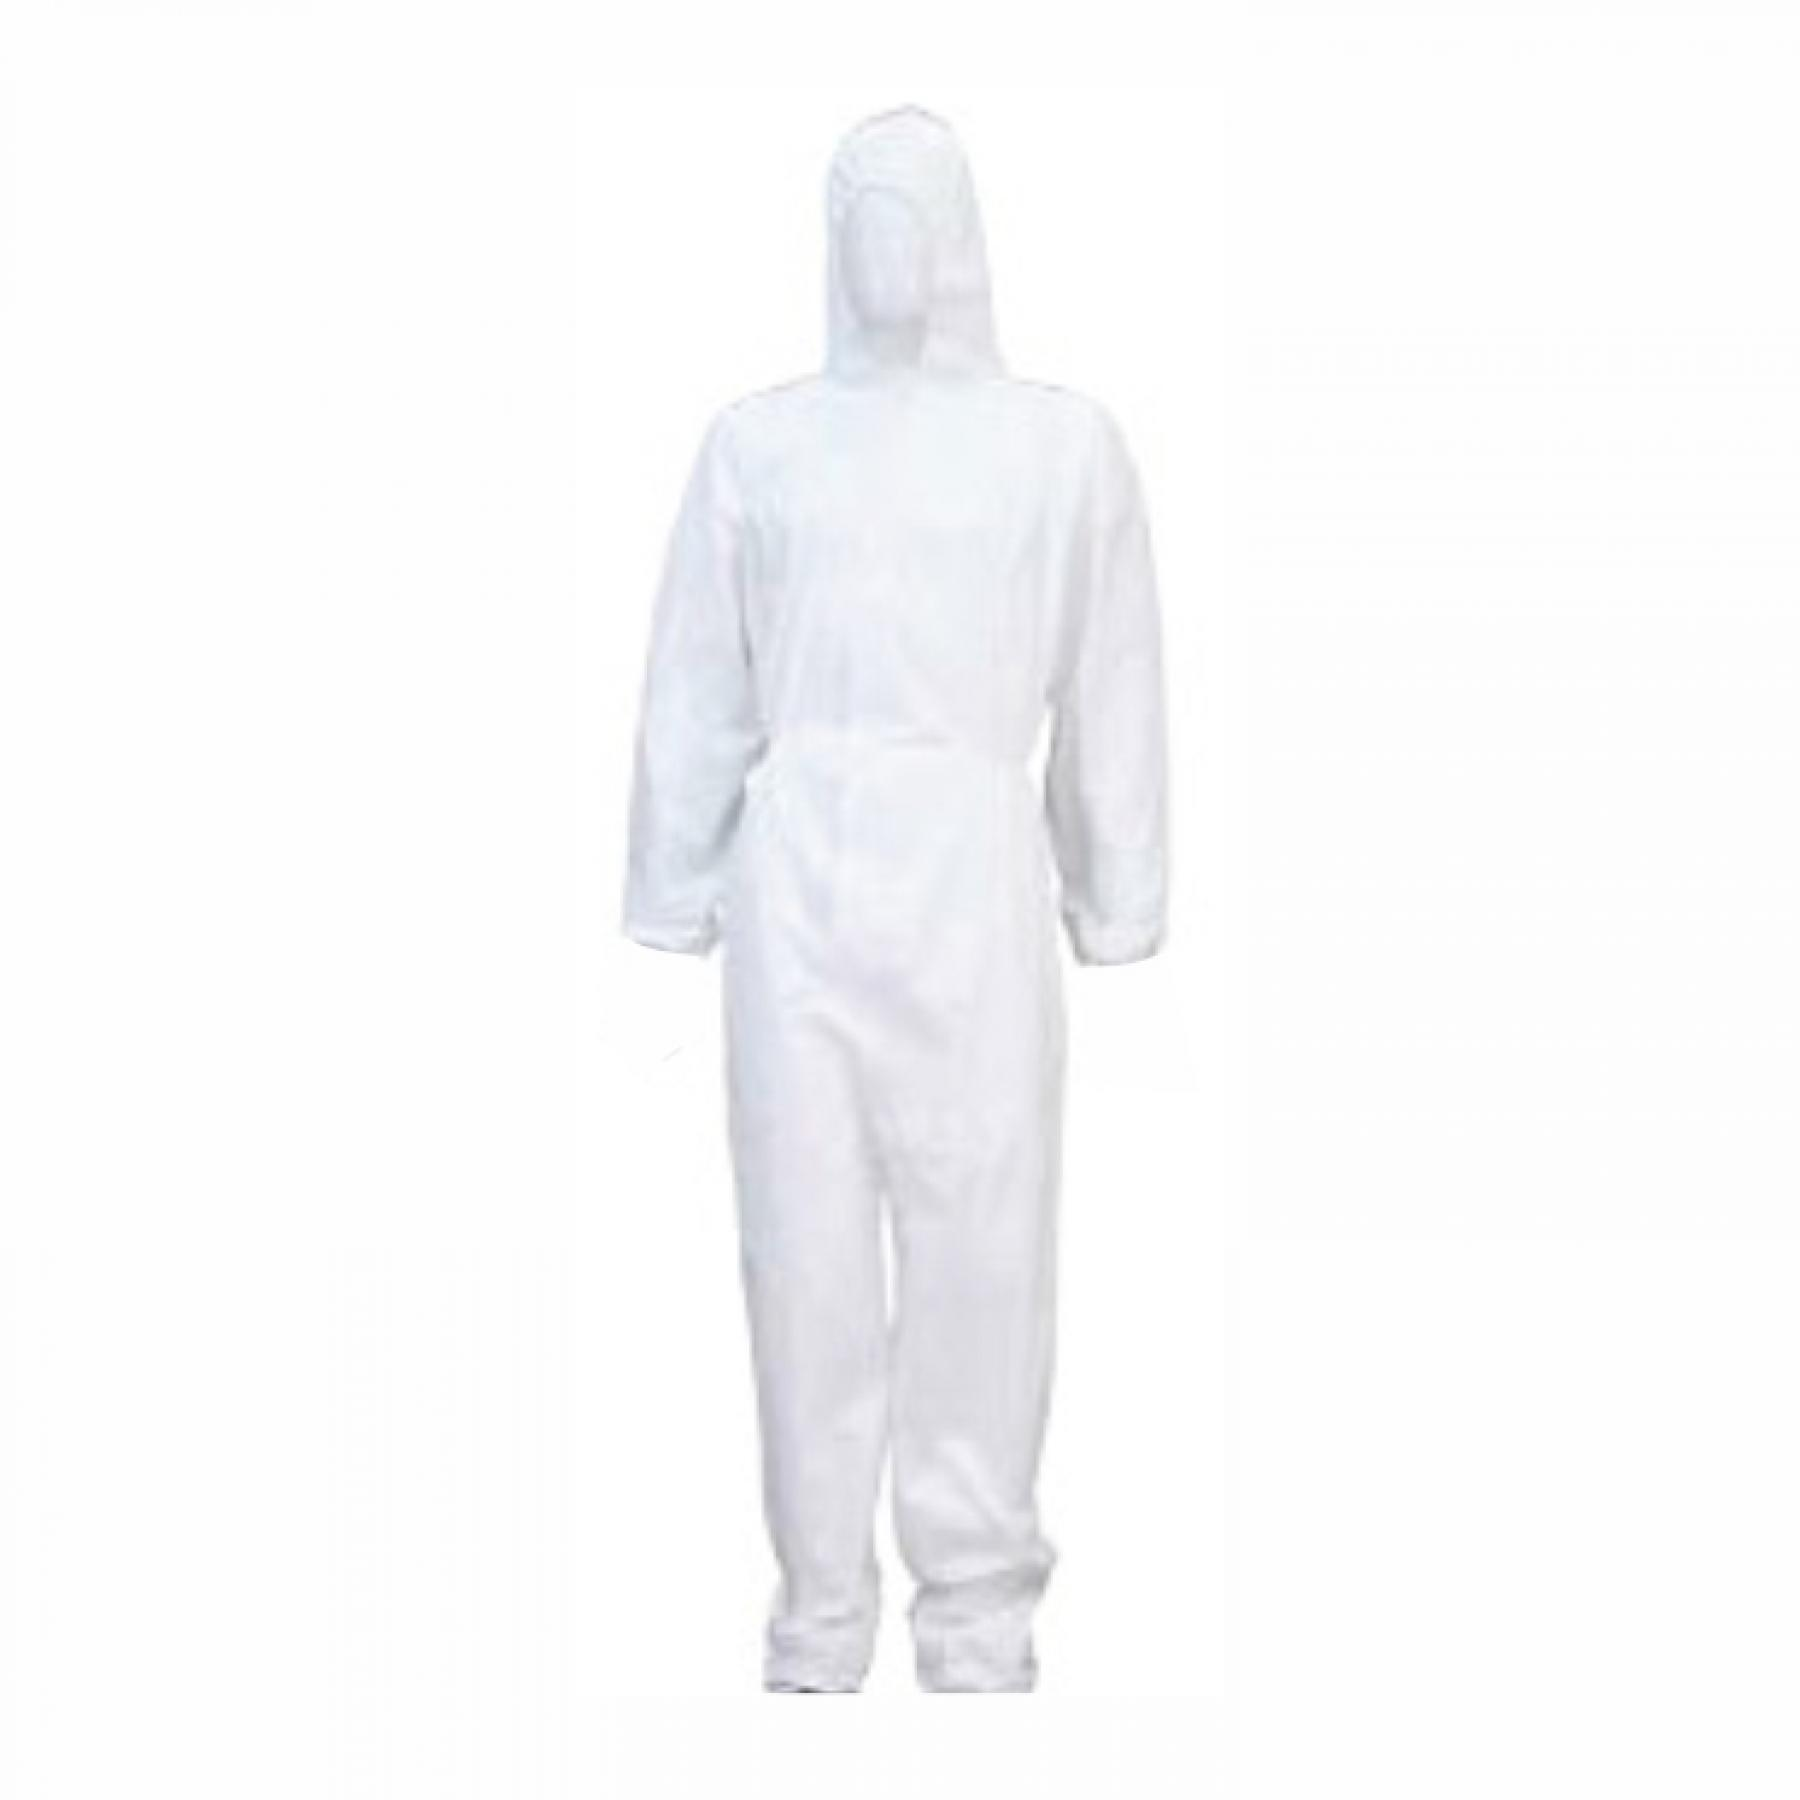 Promax White Disposable Overalls, Large